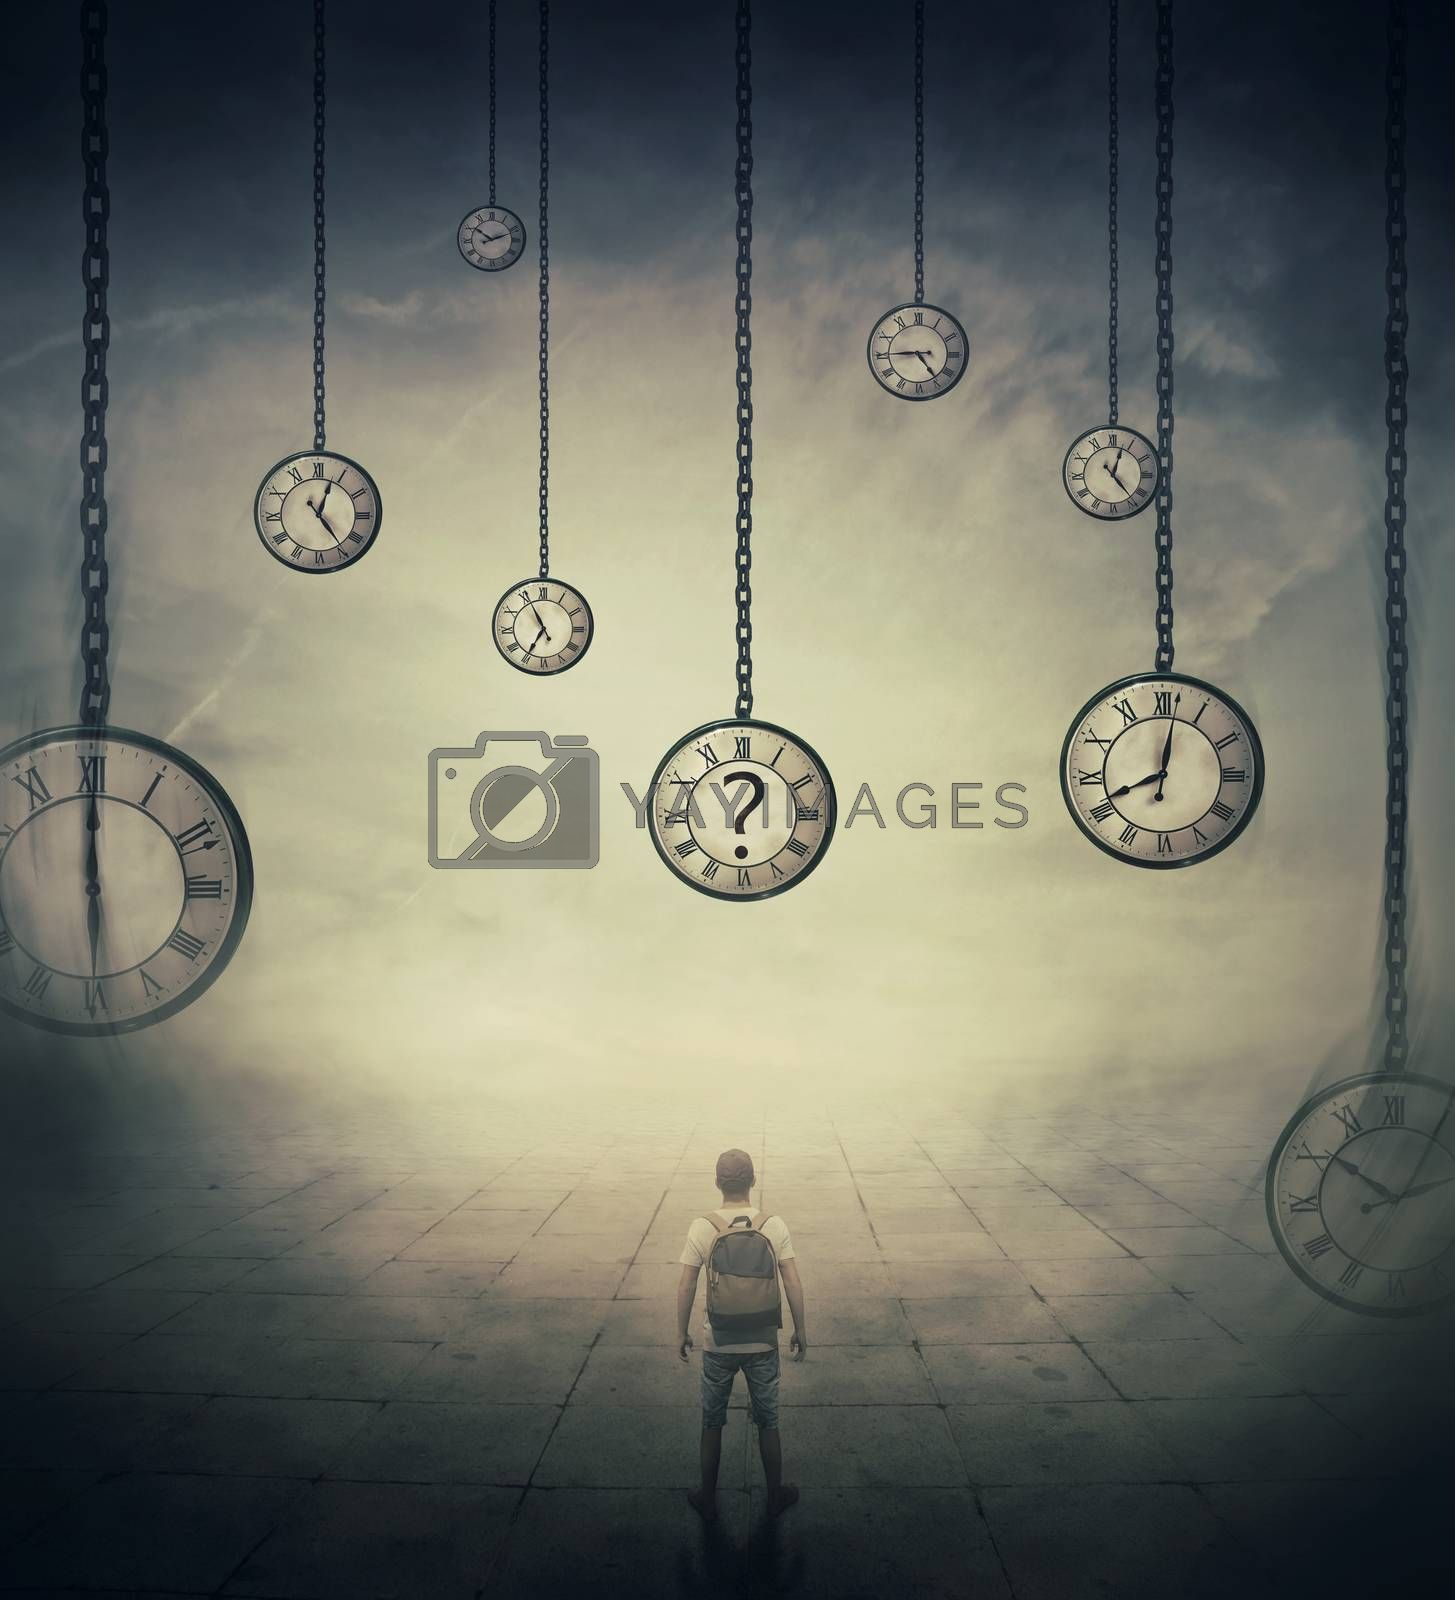 Surrealistic image with a man lost in time, standing in a foggy street in front of huge clocks set to different times. Hour perception and time travel concept.